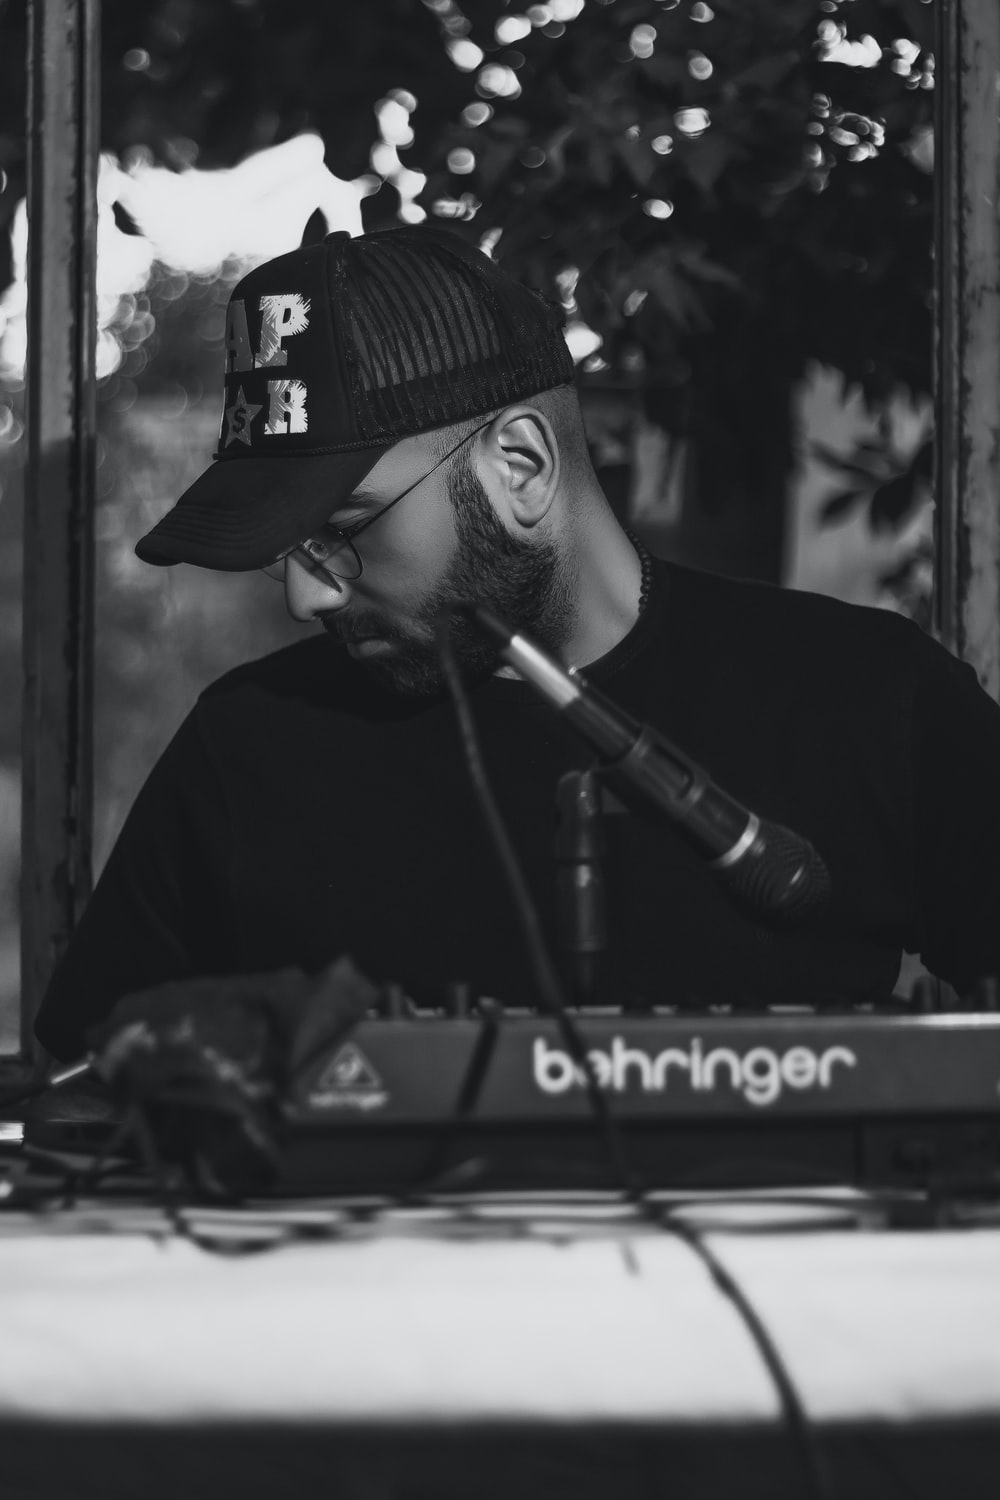 man in black hat playing piano